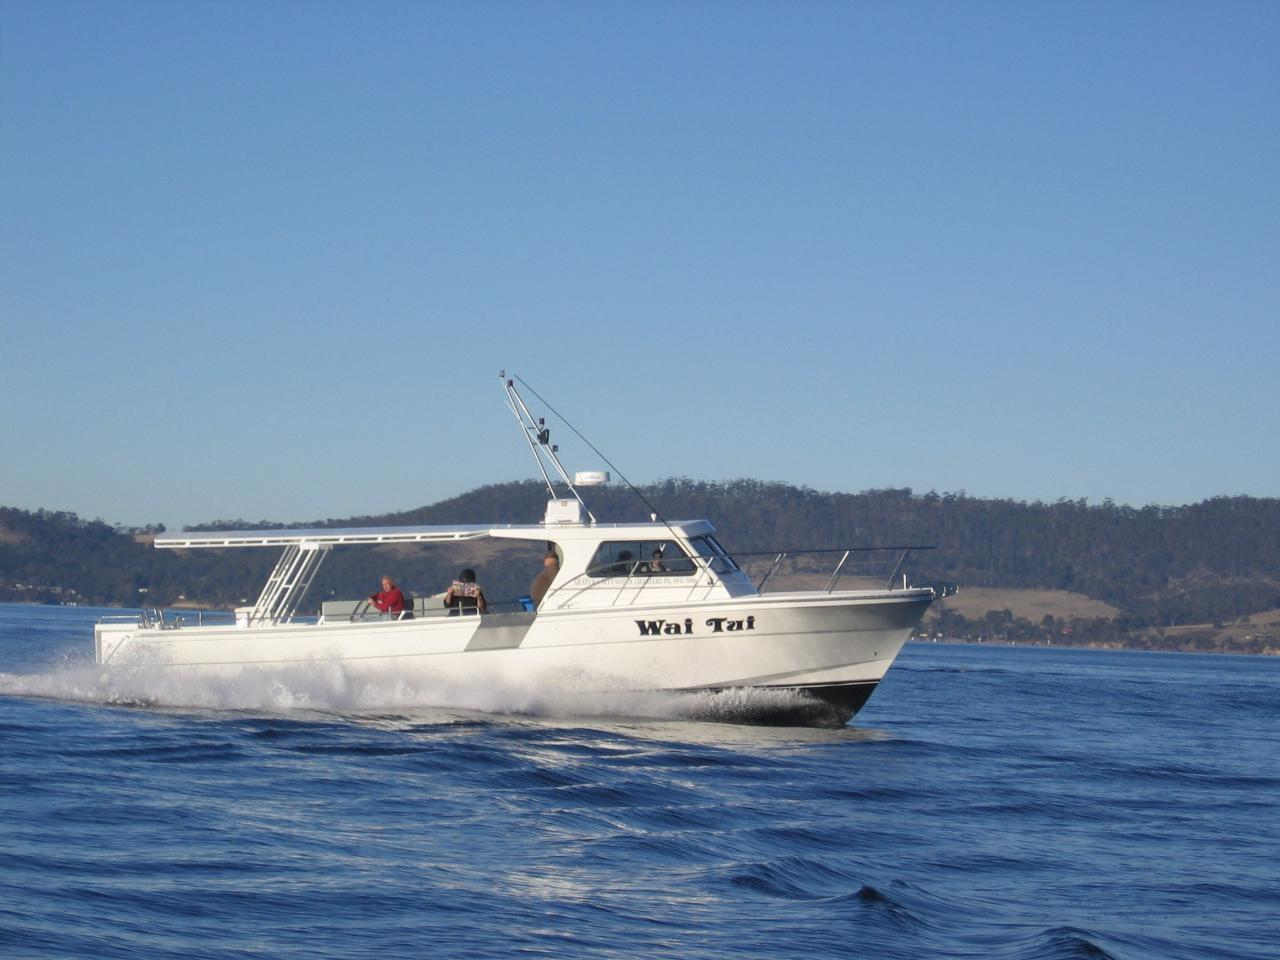 Wai Tui SOLE BOAT  Full Day Offshore Reef and Game Fishing Charter